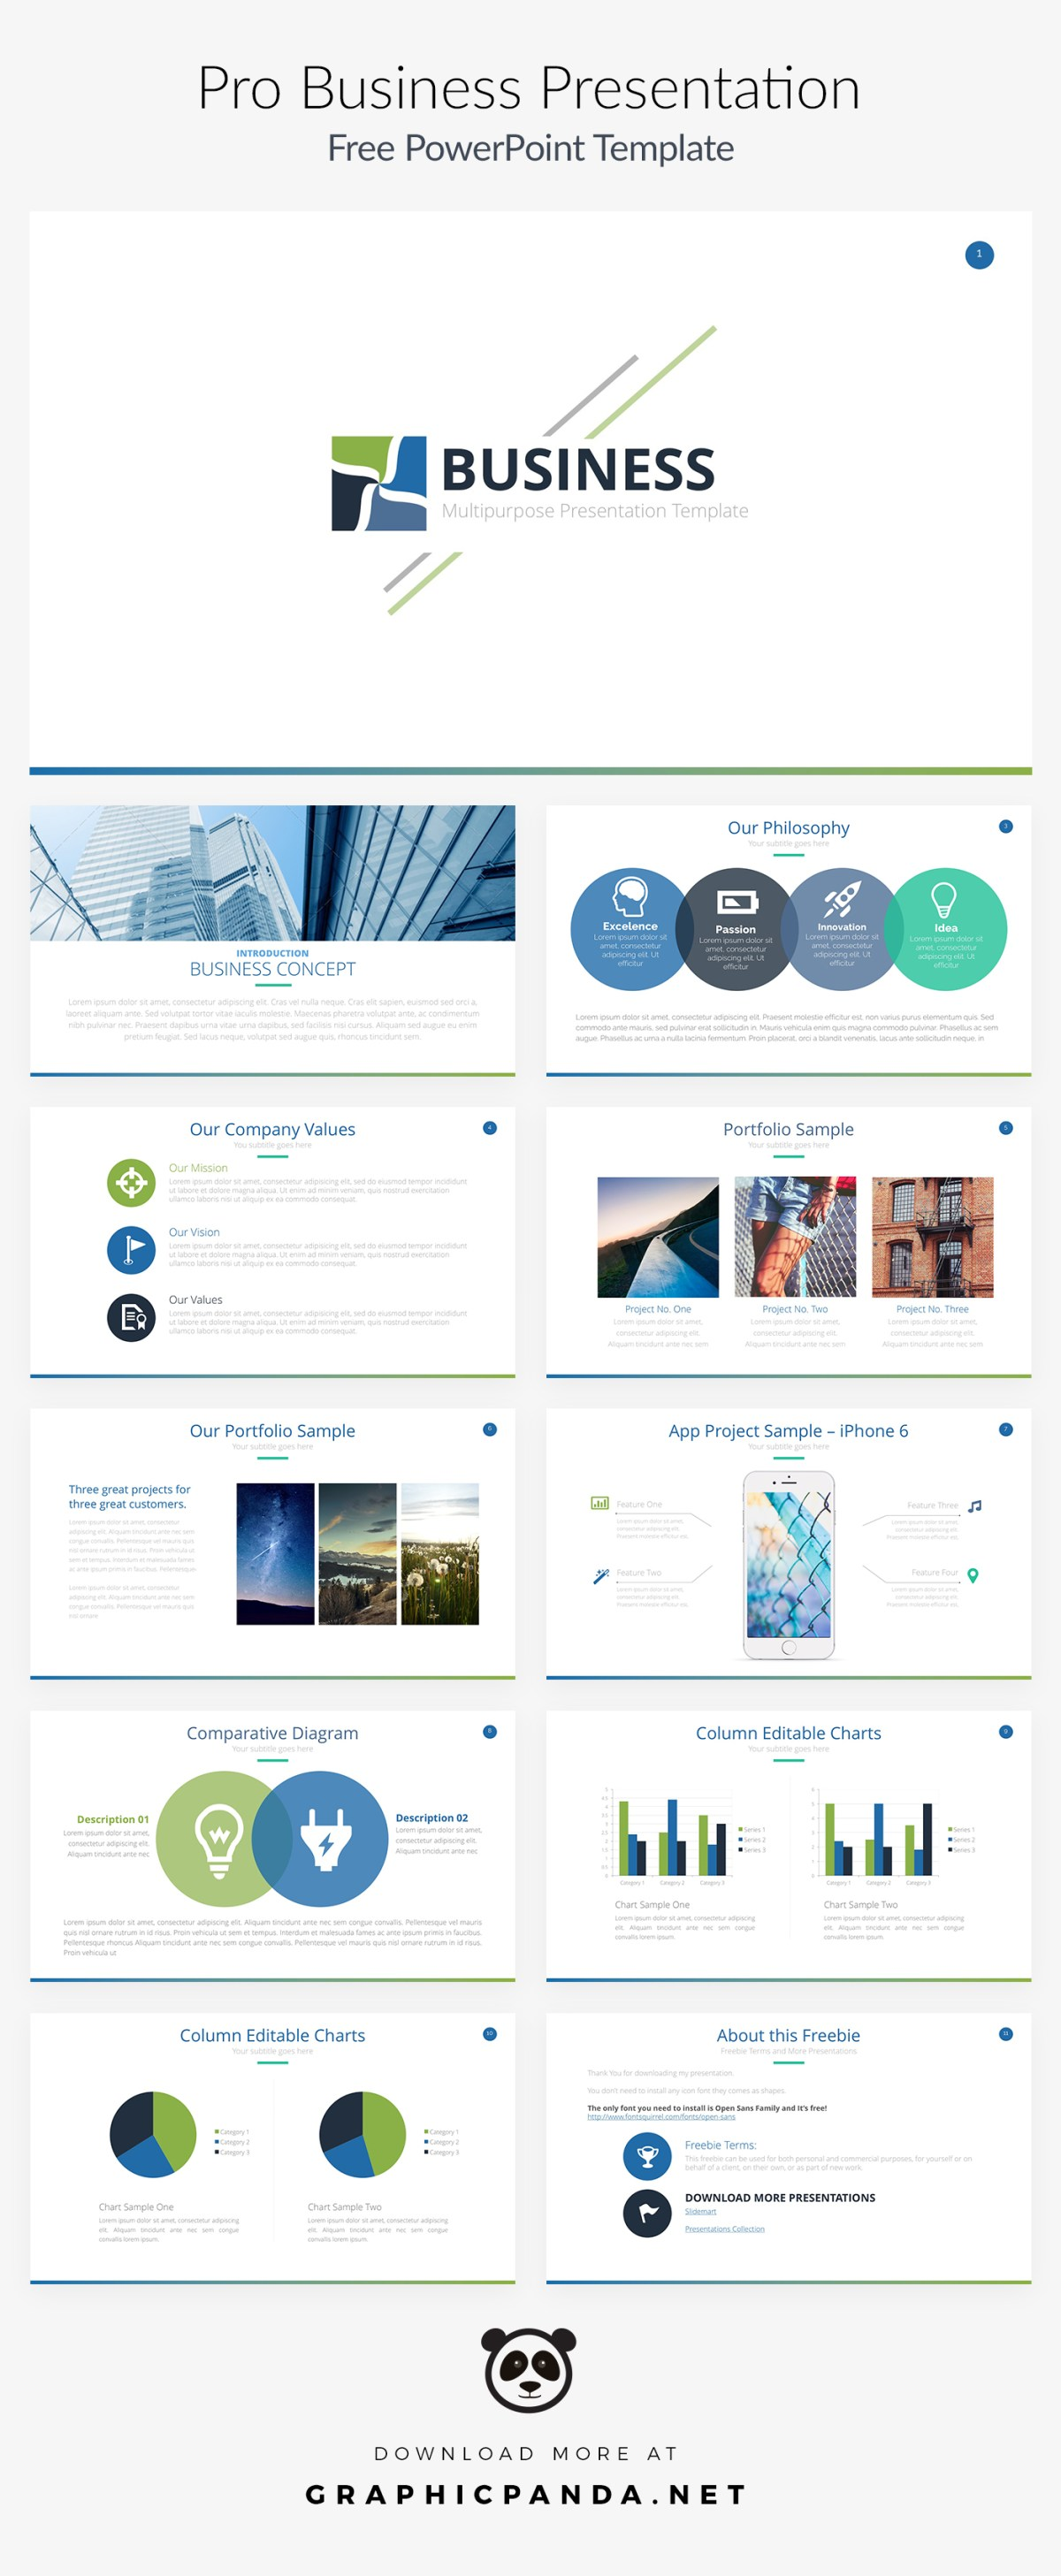 Business Strategy Powerpoint is a template that is free and extremely helpful when it comes to creating a powerpoint. Upgrading to Business Strategy gives you much more opportunities and will help you save tons of hard work hours.This template helps your presentation to look professional and yet still keep the modern 21st-century look that is perfect when you want to propose one of your very own ideas.